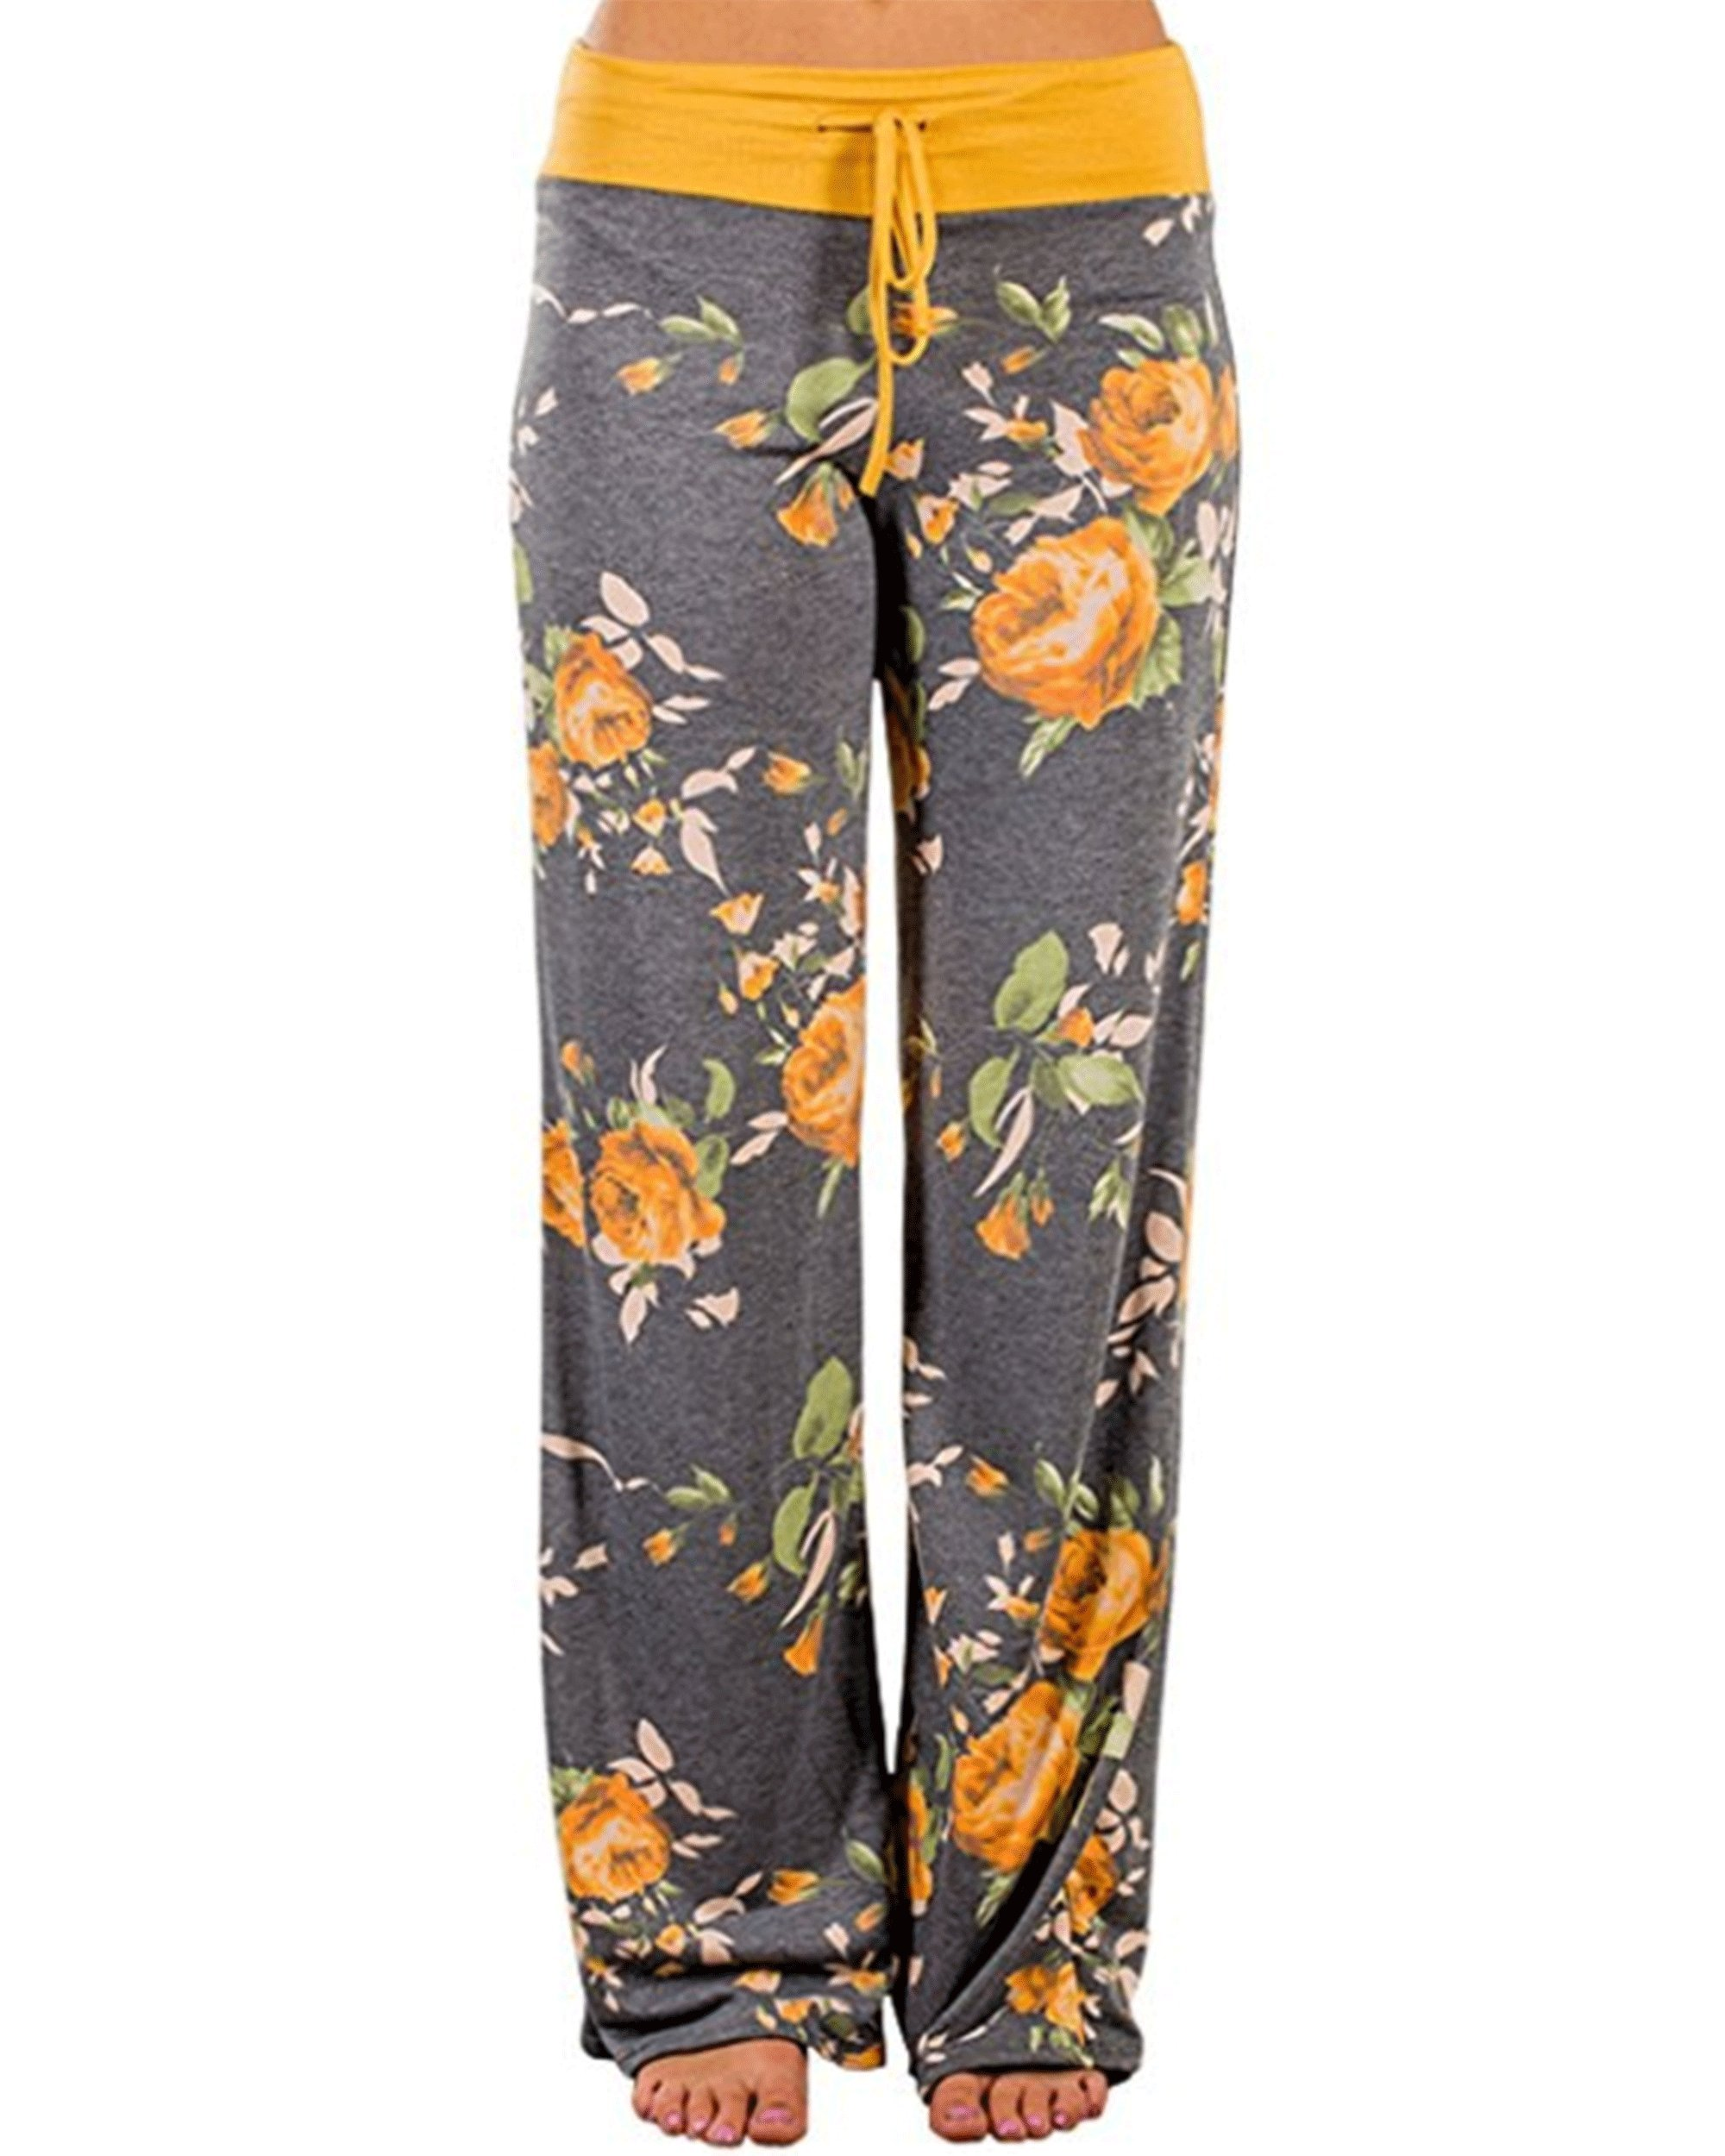 AceIce Women's Comfy Stretch Floral Print Lounge Pants Casual Drawstring Palazzo Pants Wide Leg Pajama Pants (Yellow, Tag S= US 2-4)